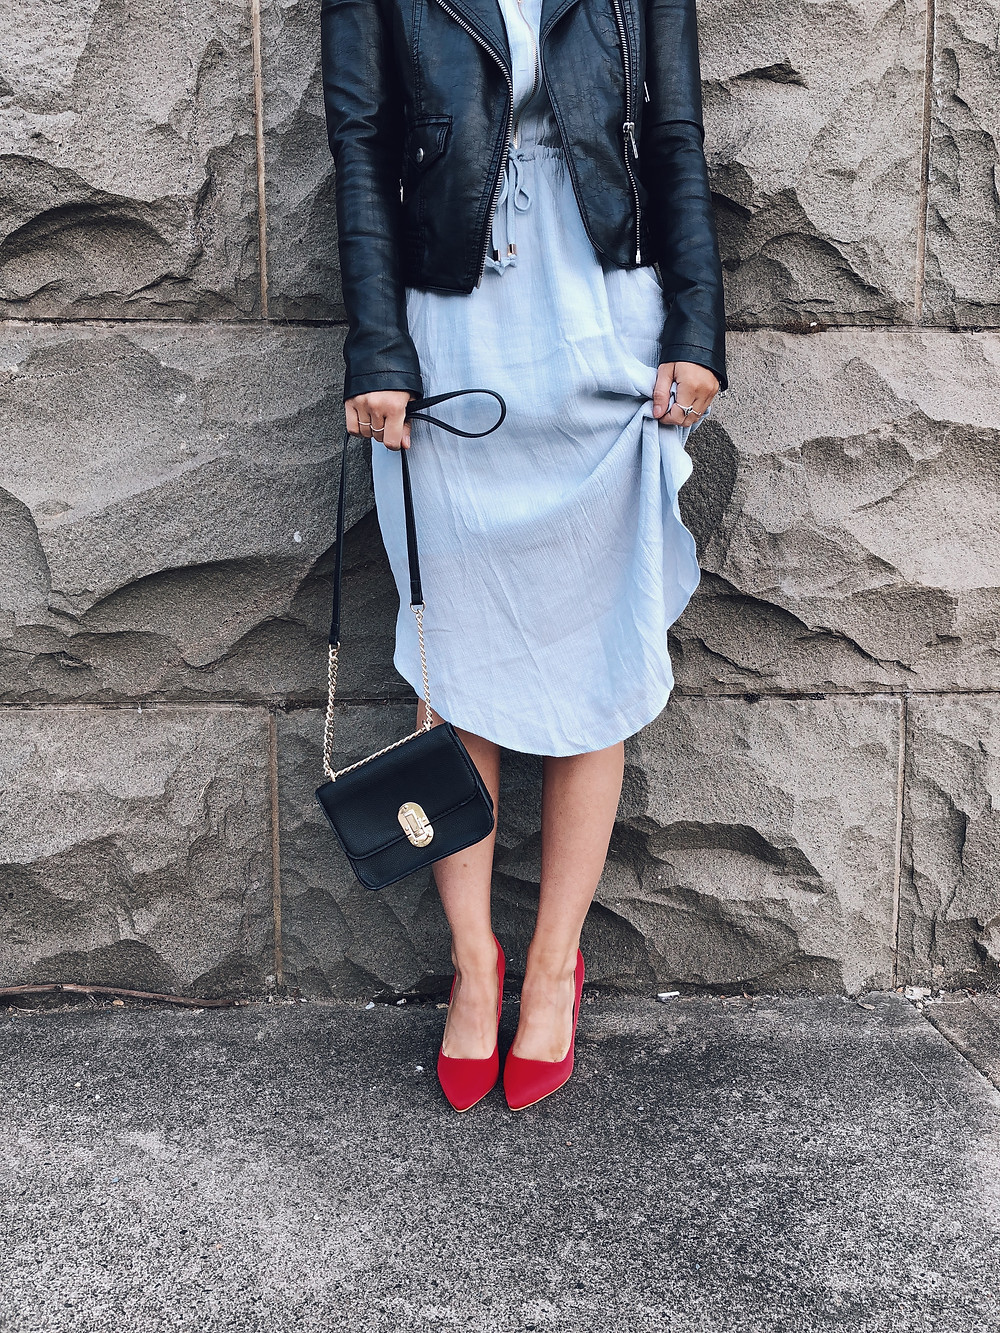 St Frock The Style Side Streetstyle